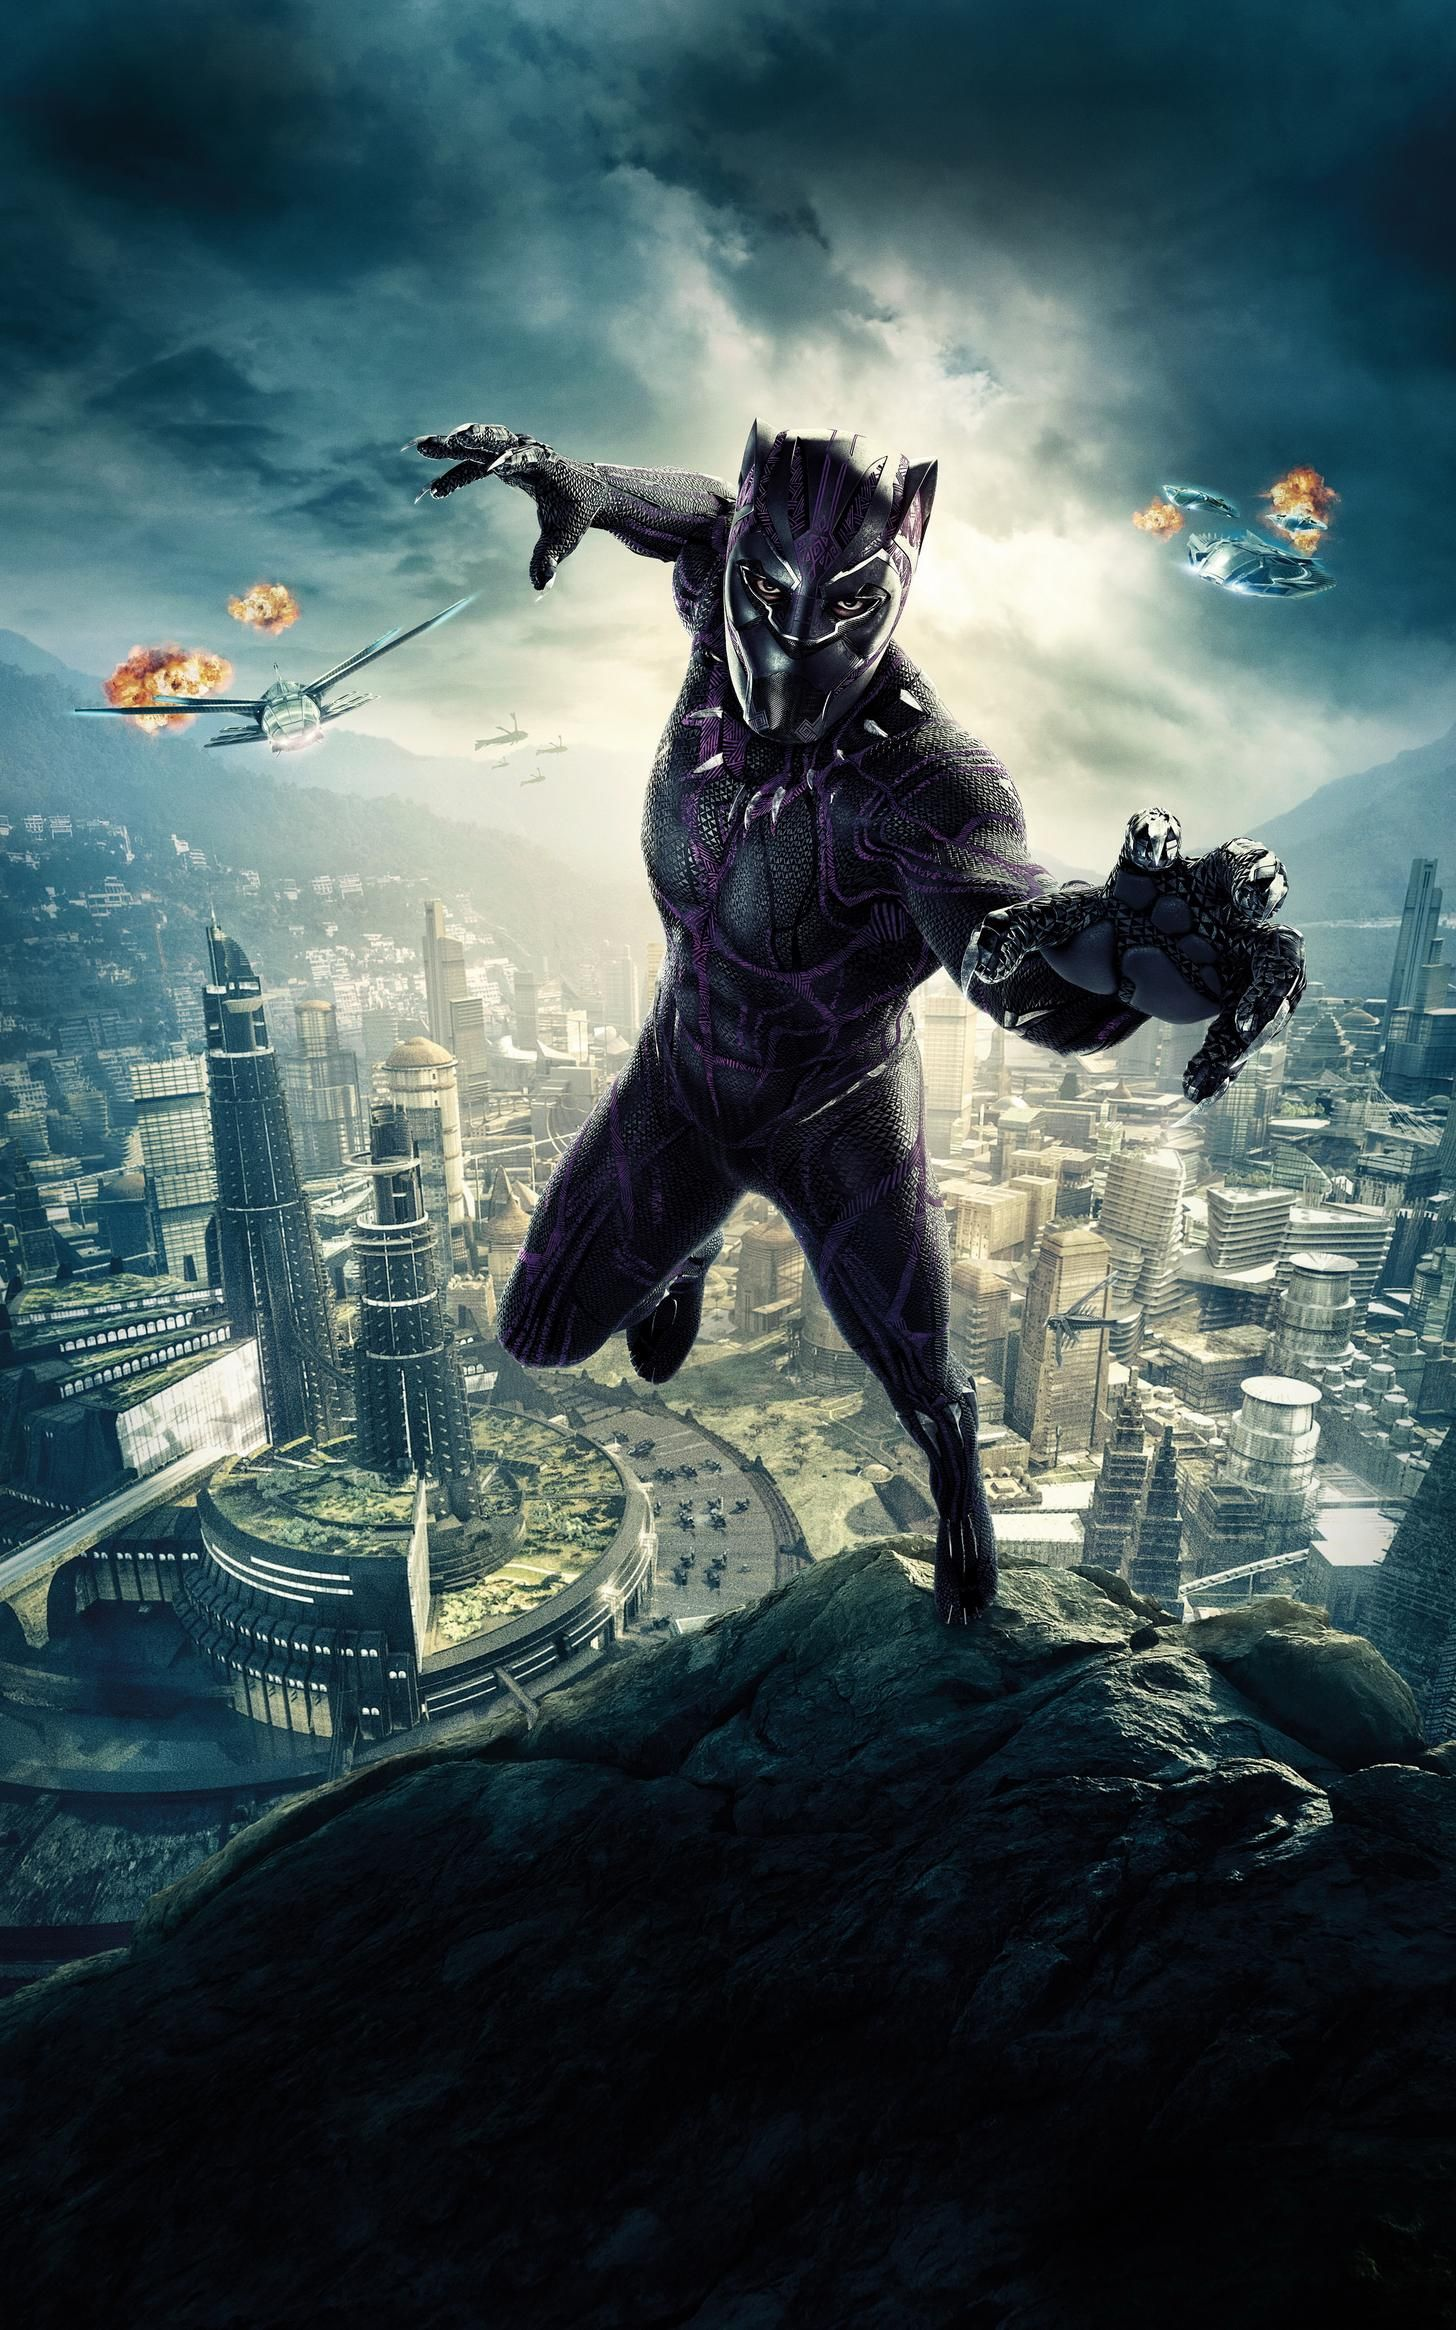 1456x2330 Movie of the Week: Black Panther (Mobile Wallpapers 211 ...